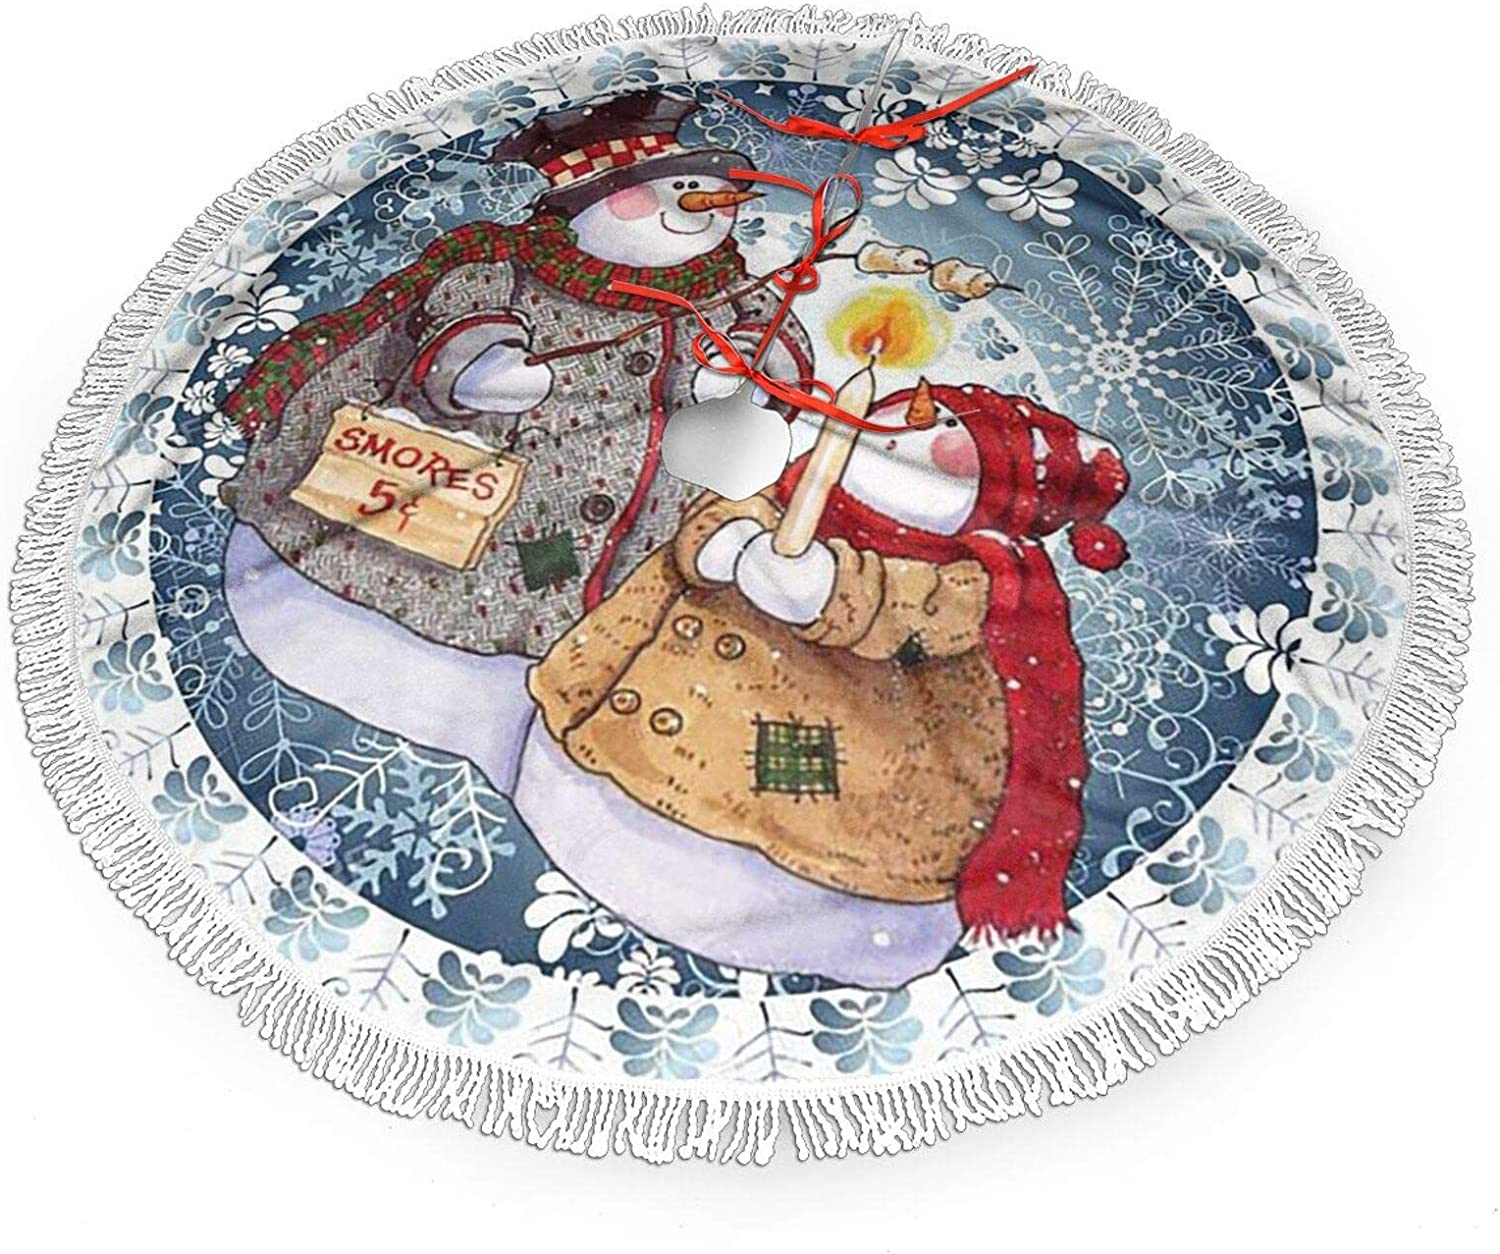 Christmas Tree Skirts Party Decorations Festival half Supplies T Xmas Clearance SALE! Limited time!